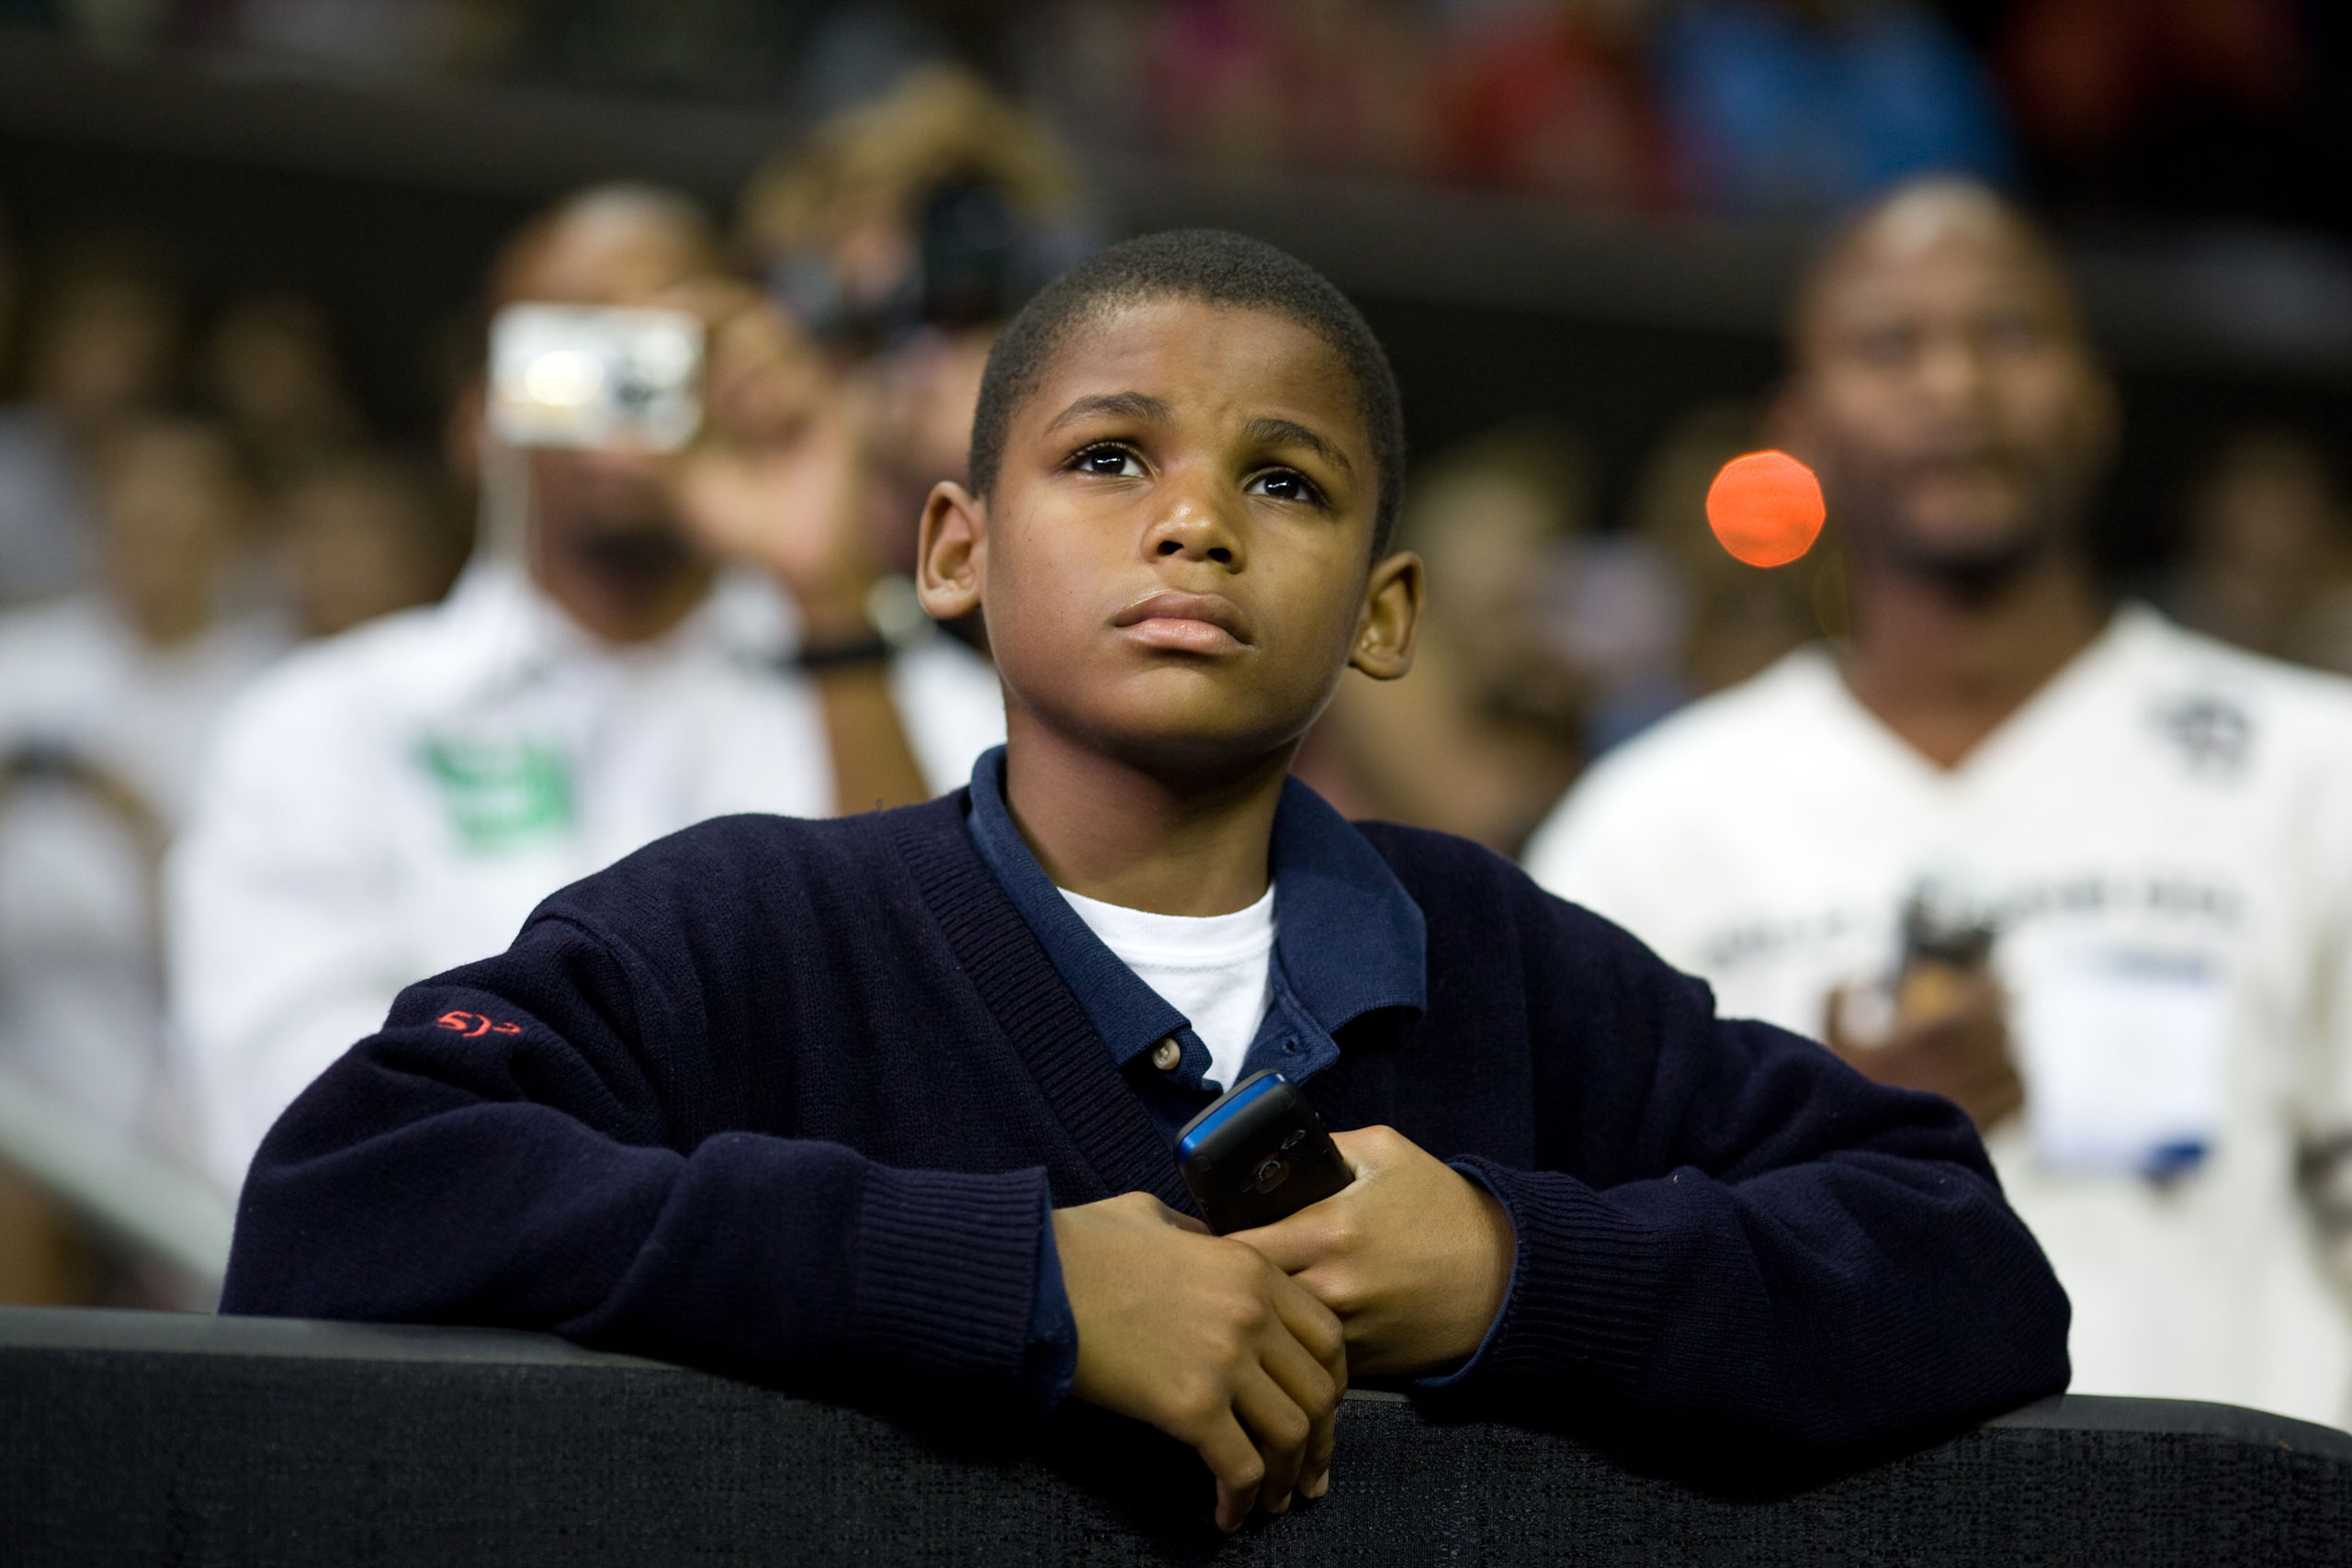 """""""I was struck by the young boy's look as he watched the President speak at a health care reform rally at the University of Maryland in College Park,""""Sept. 17, 2009."""